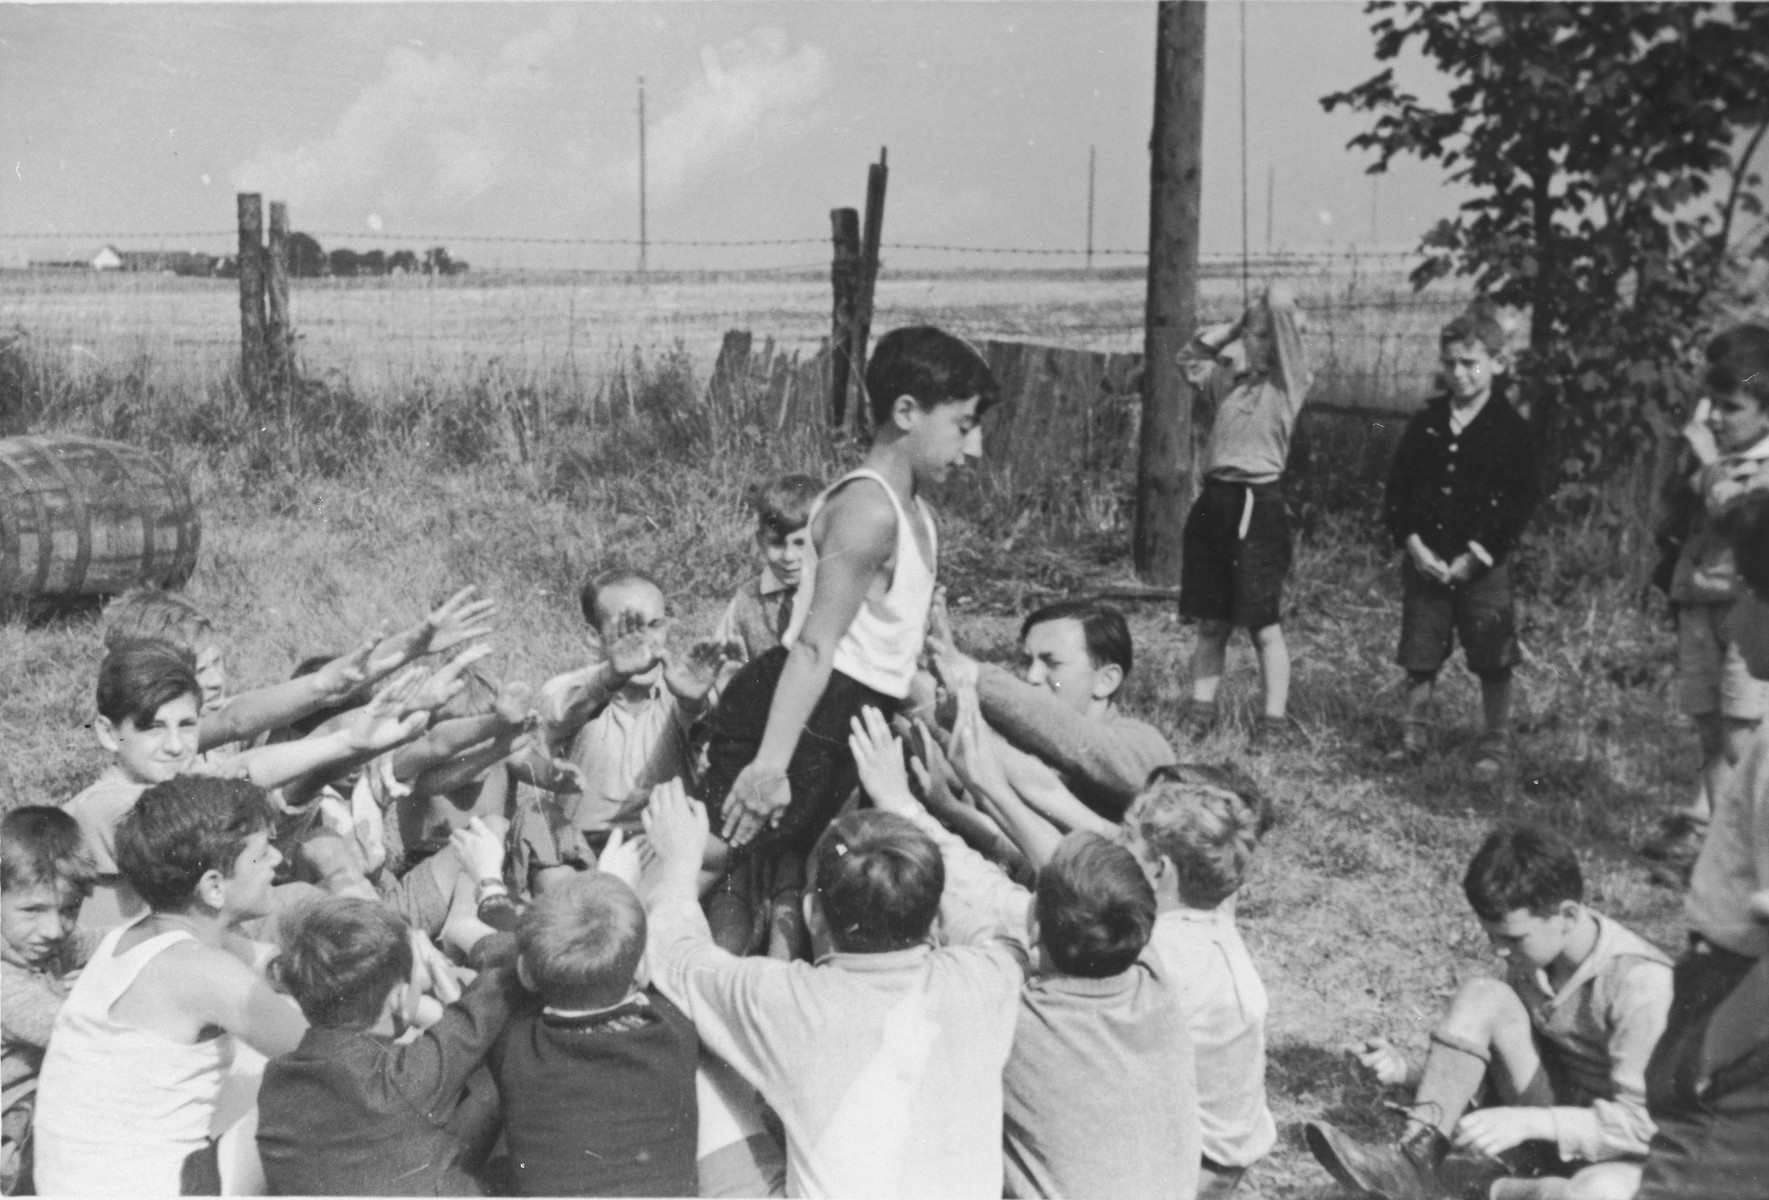 A Jewish child from Germany is passed around a circle in a trust game at a Kinderlager [children's recreational summer camp] in Horserod, Denmark.    In 1935-36 Norbert Wollheim was involved in organizing groups of German Jewish youth to attend a summer camp in Denmark.